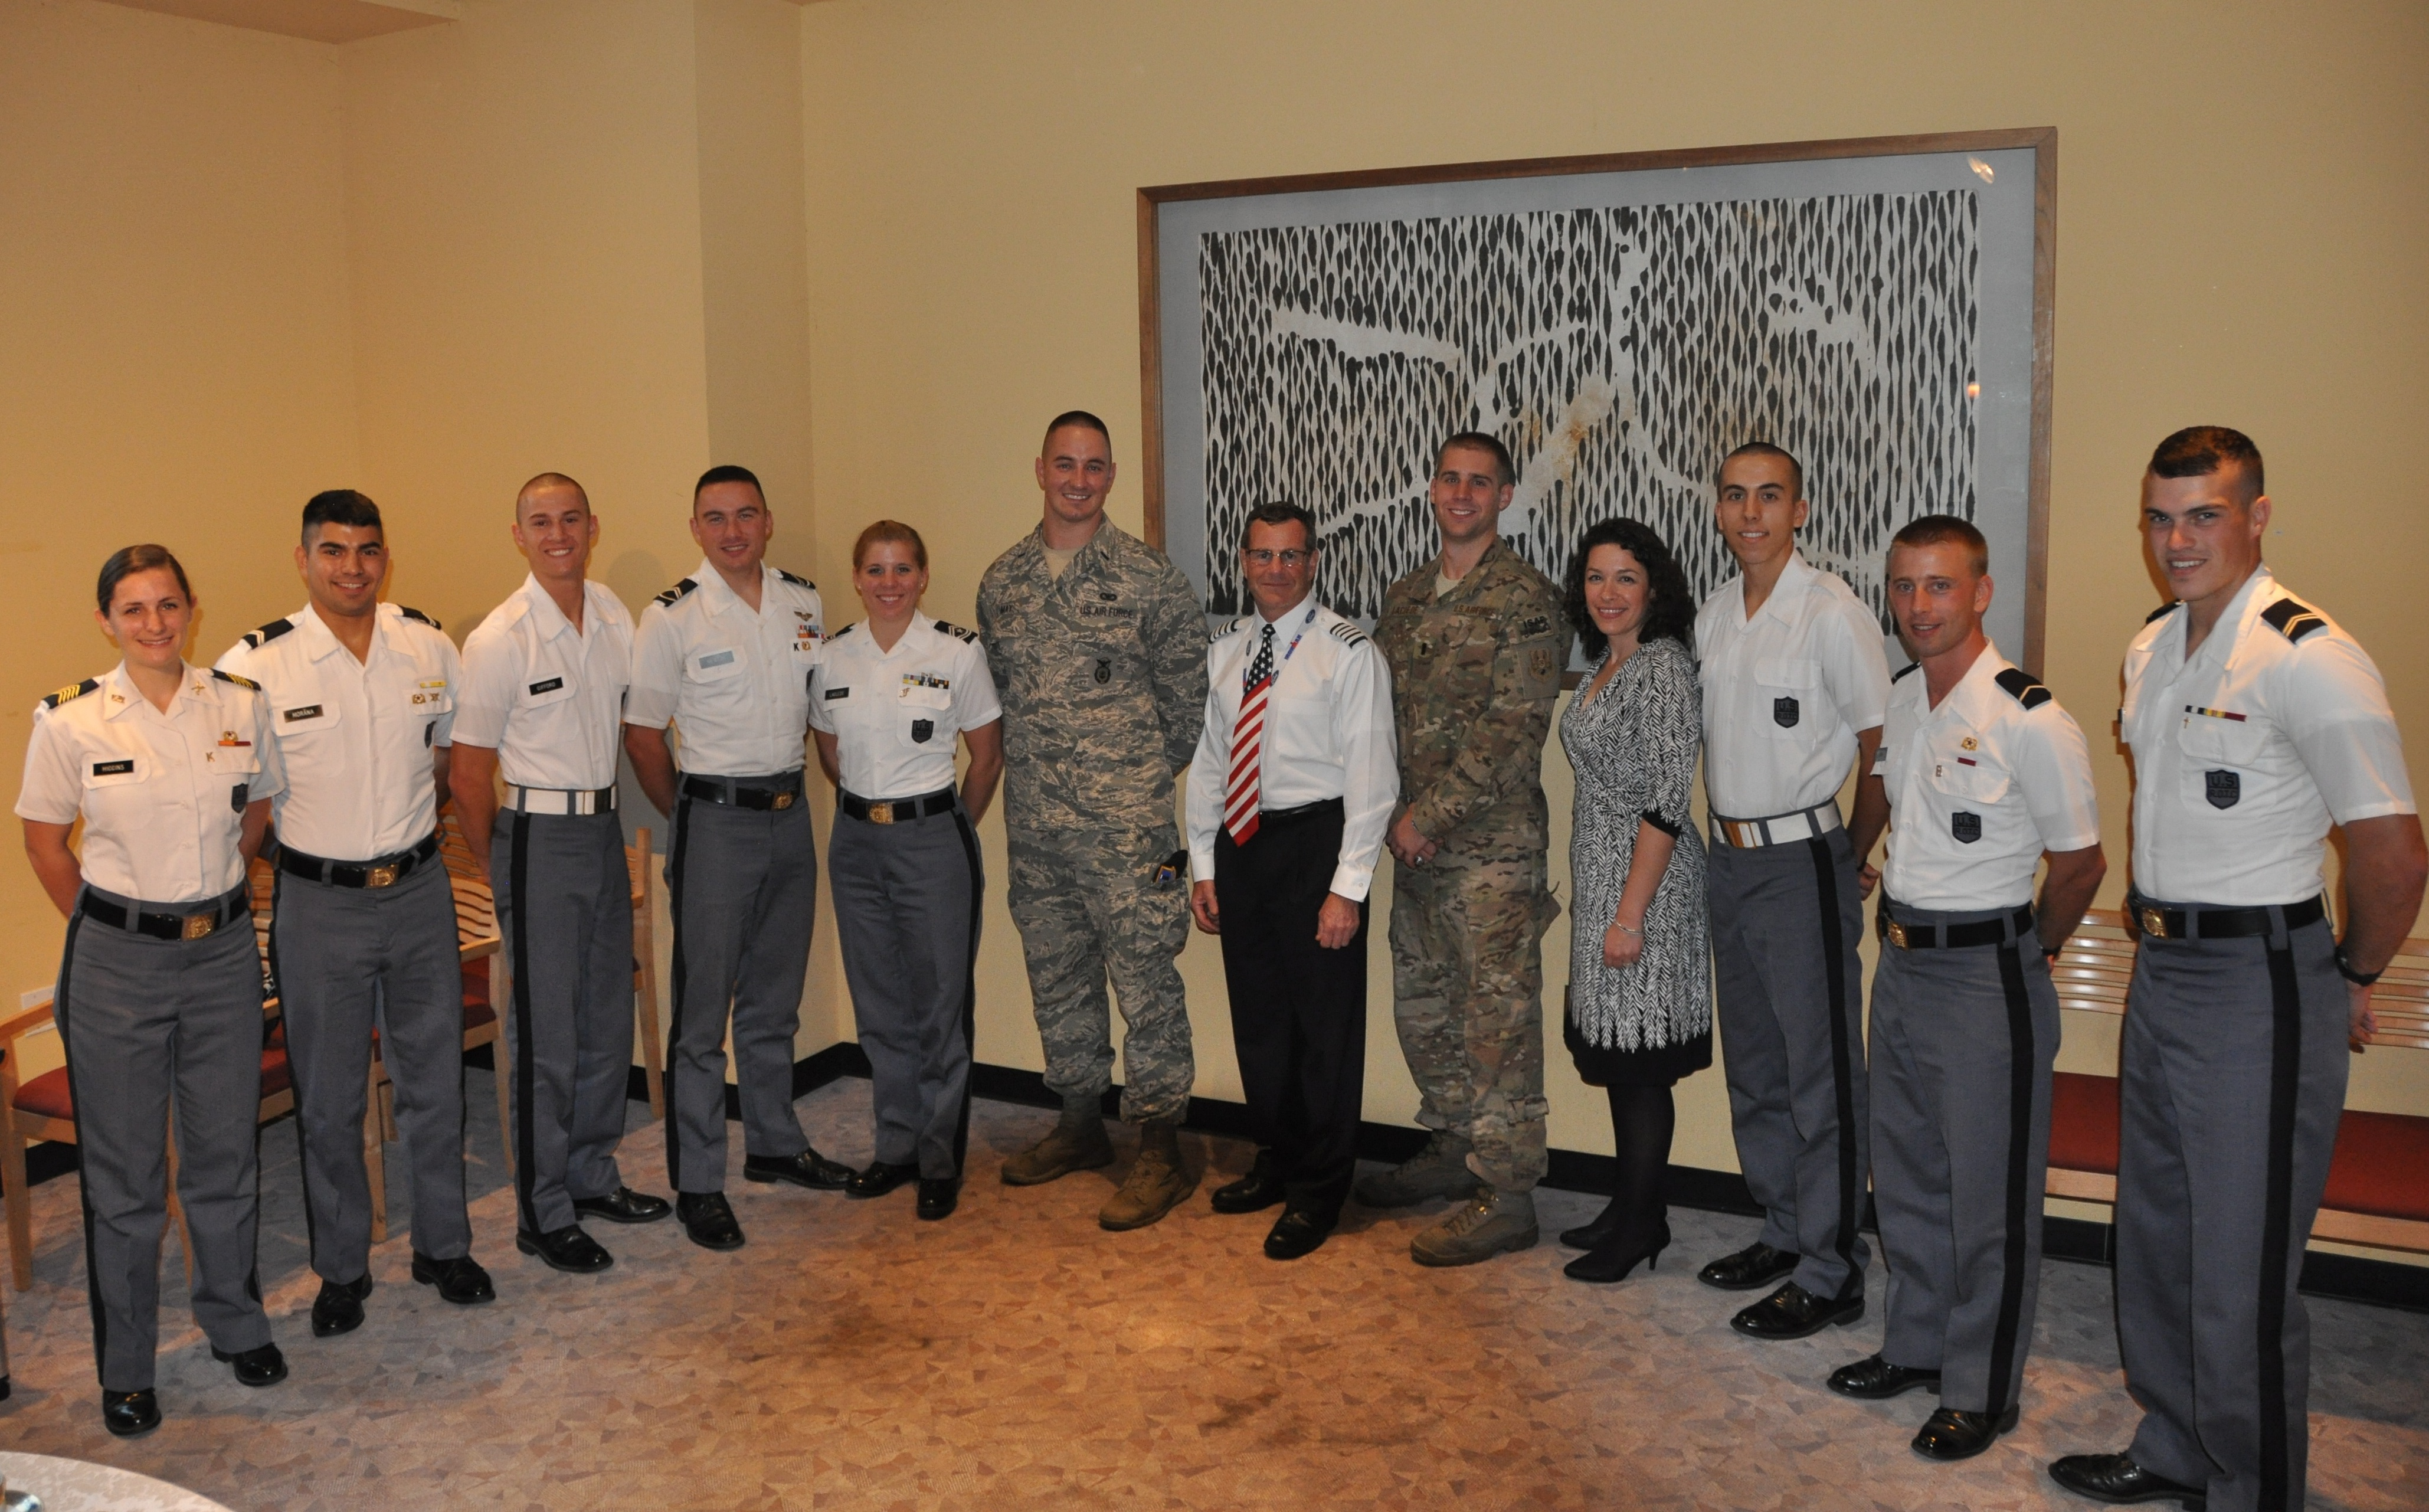 Cadets stand with the visiting Fall 2013 Gunfighters at the reception following the panel.